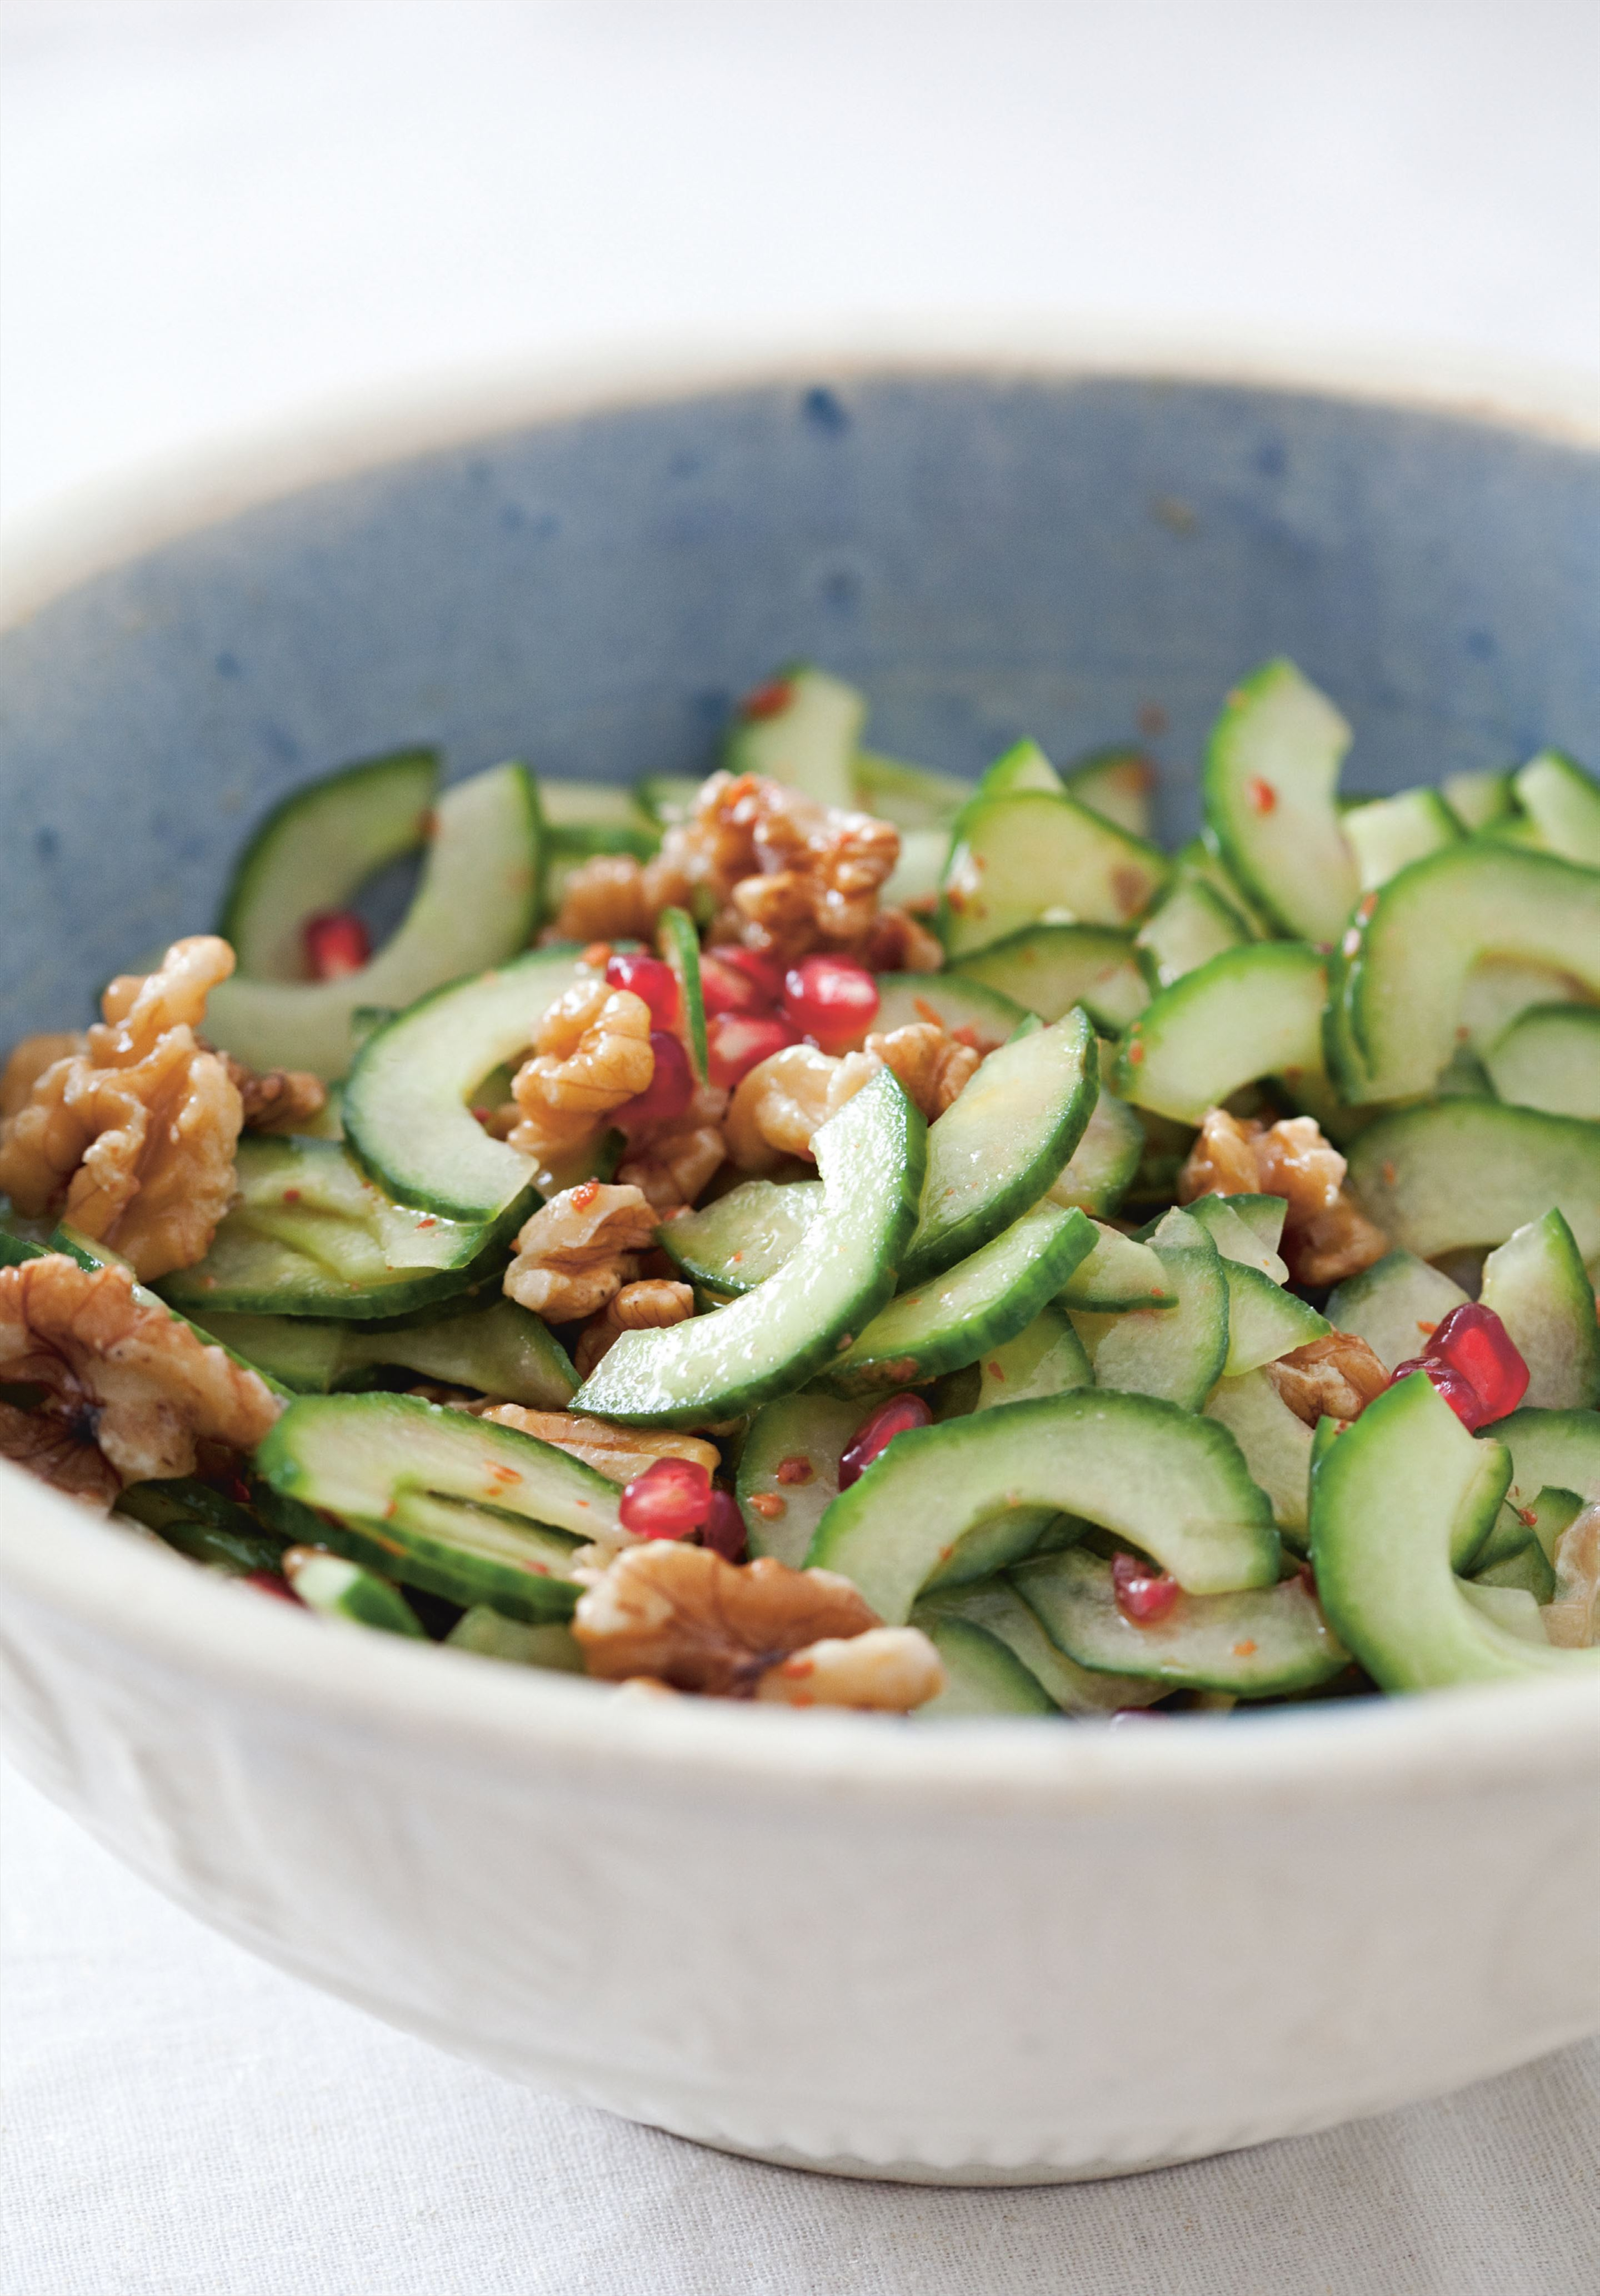 Cucumber and walnut salad